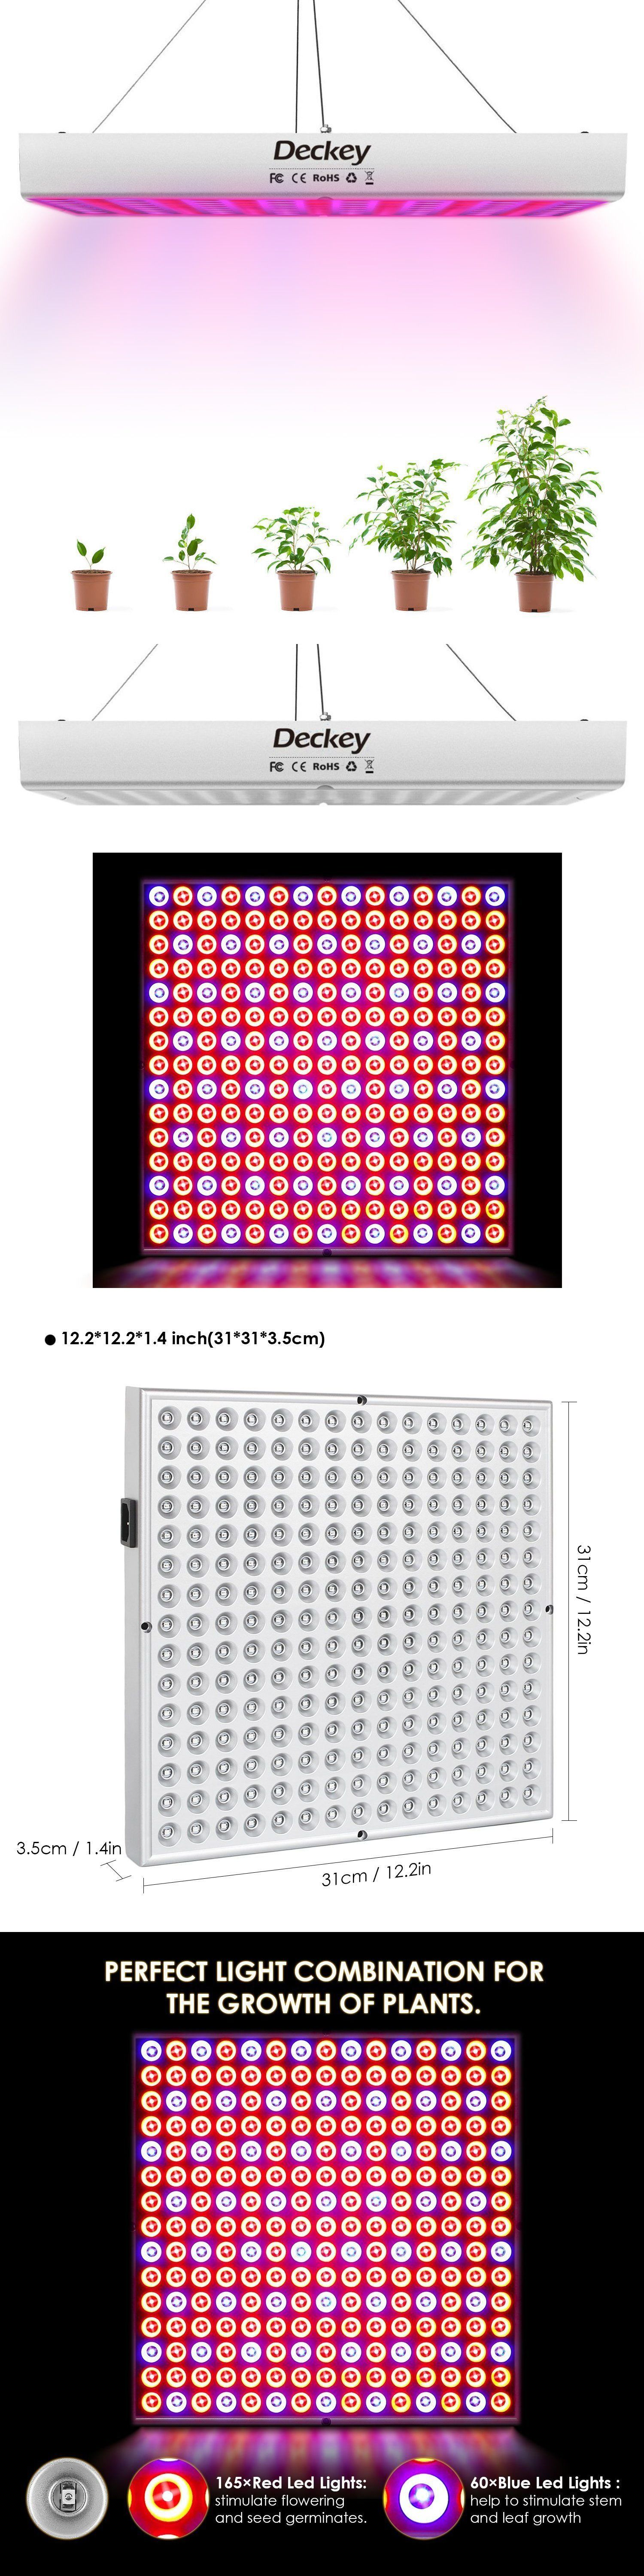 Details About Led Grow Light 225led Uv Ir Growing Lamp For Indoor Plants Hydroponic Plant Hydroponic Plants Grow Lights Led Grow Lights